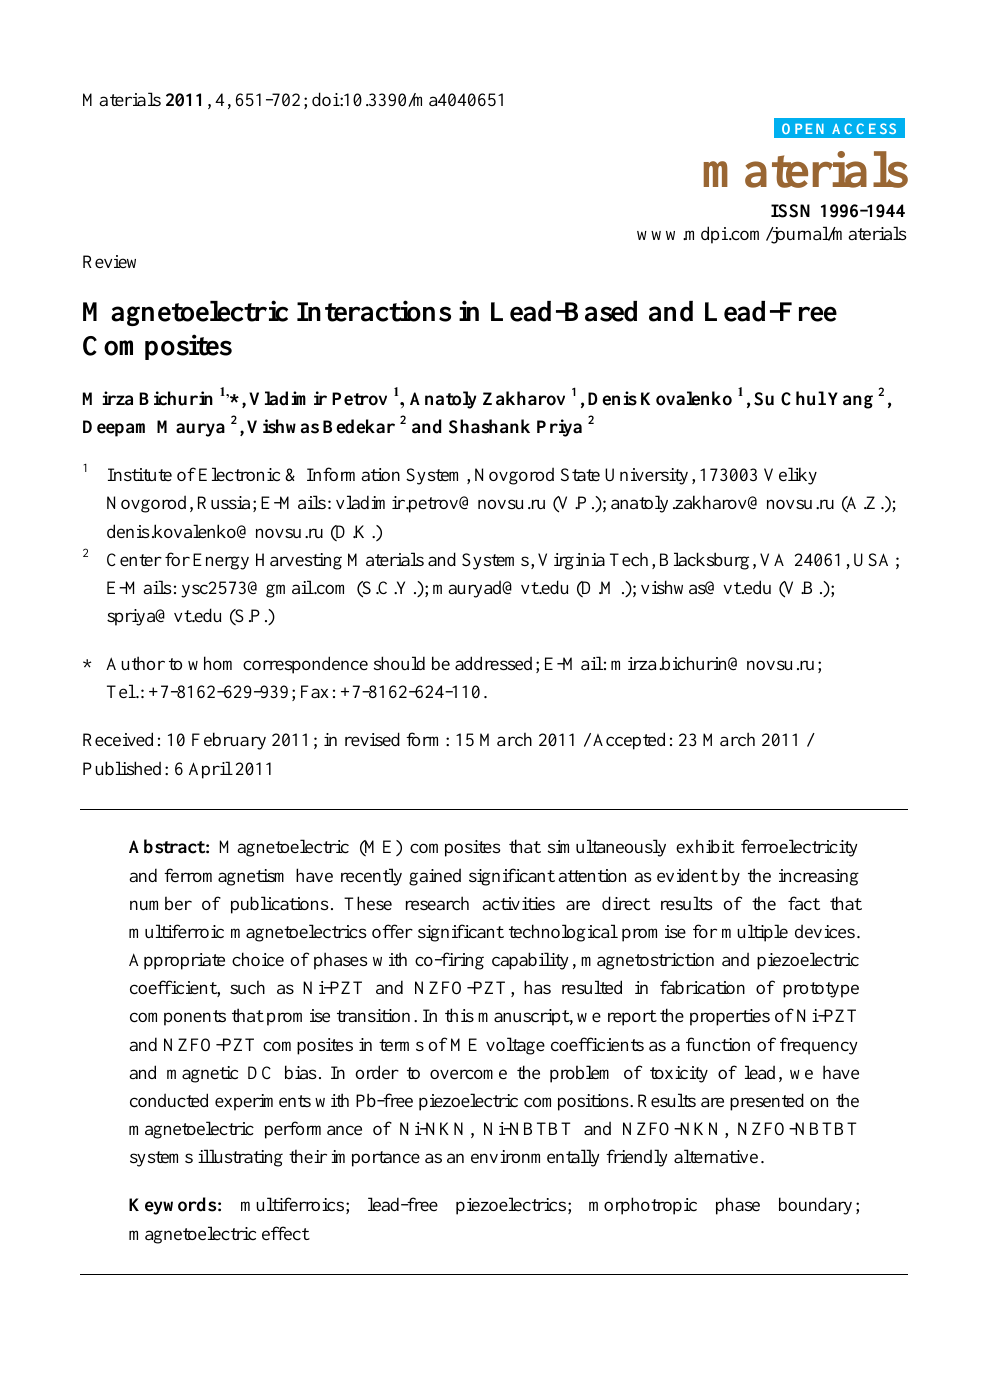 Magnetoelectric Interactions in Lead-Based and Lead-Free Composites